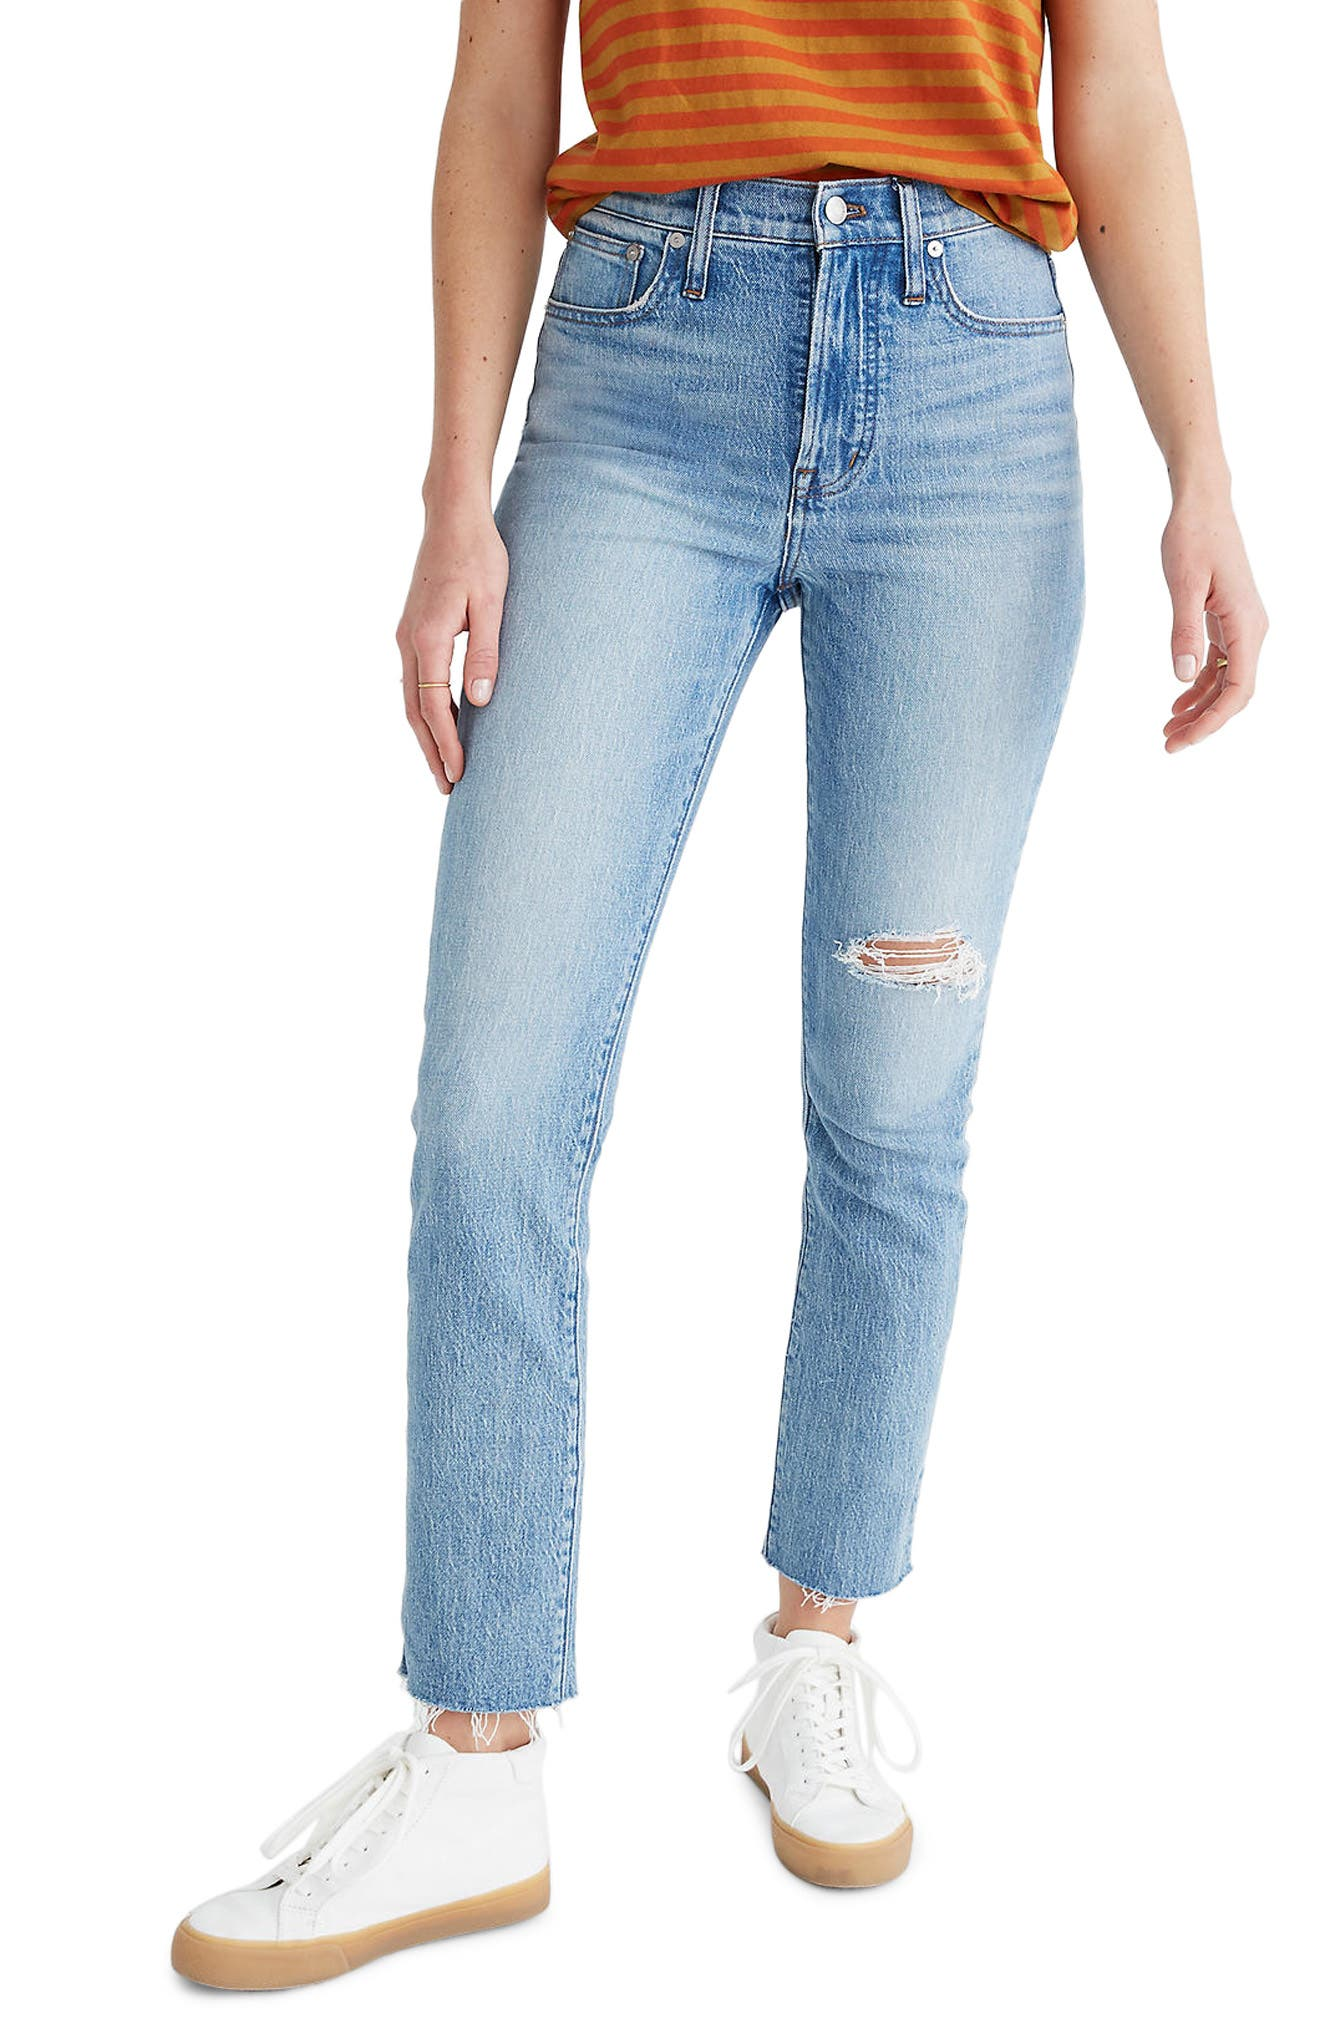 Madewell The Perfect Vintage Crop High Waist Jeans (Rosabelle) (Regular, Petite & Plus Size)